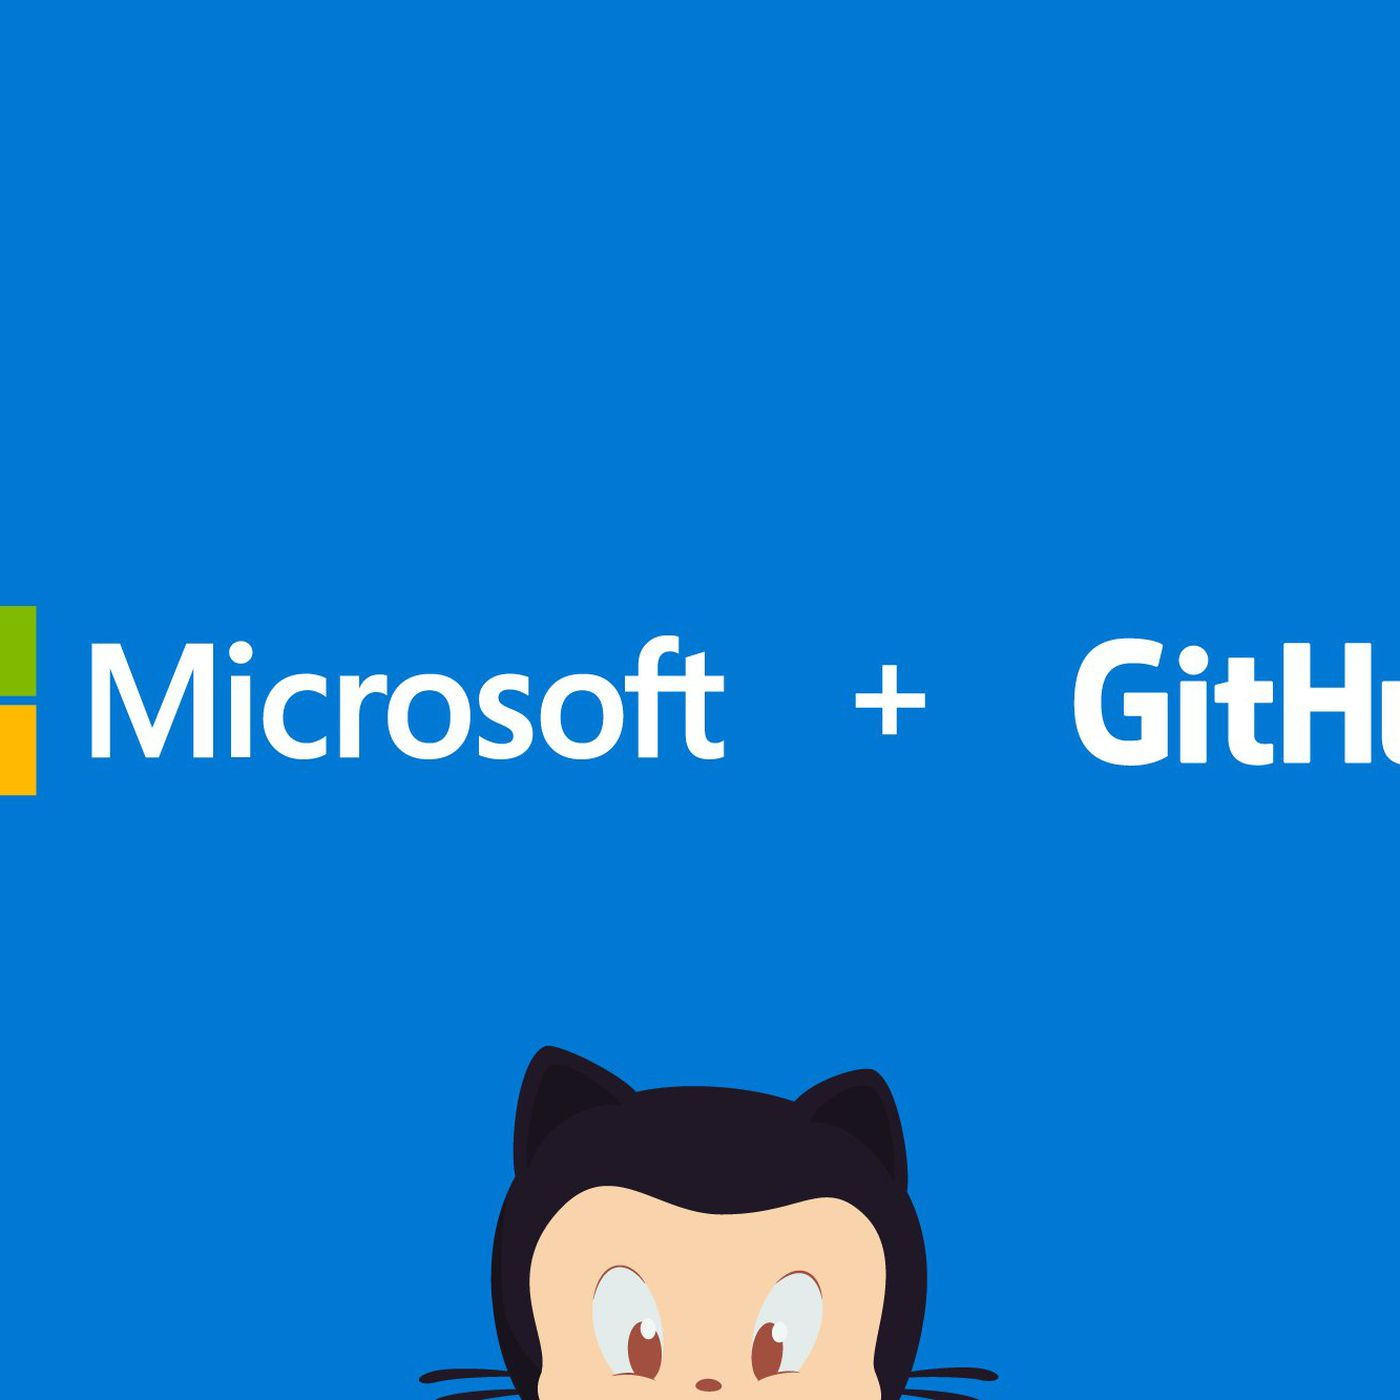 Google admits it lost out to Microsoft buying GitHub - The Verge